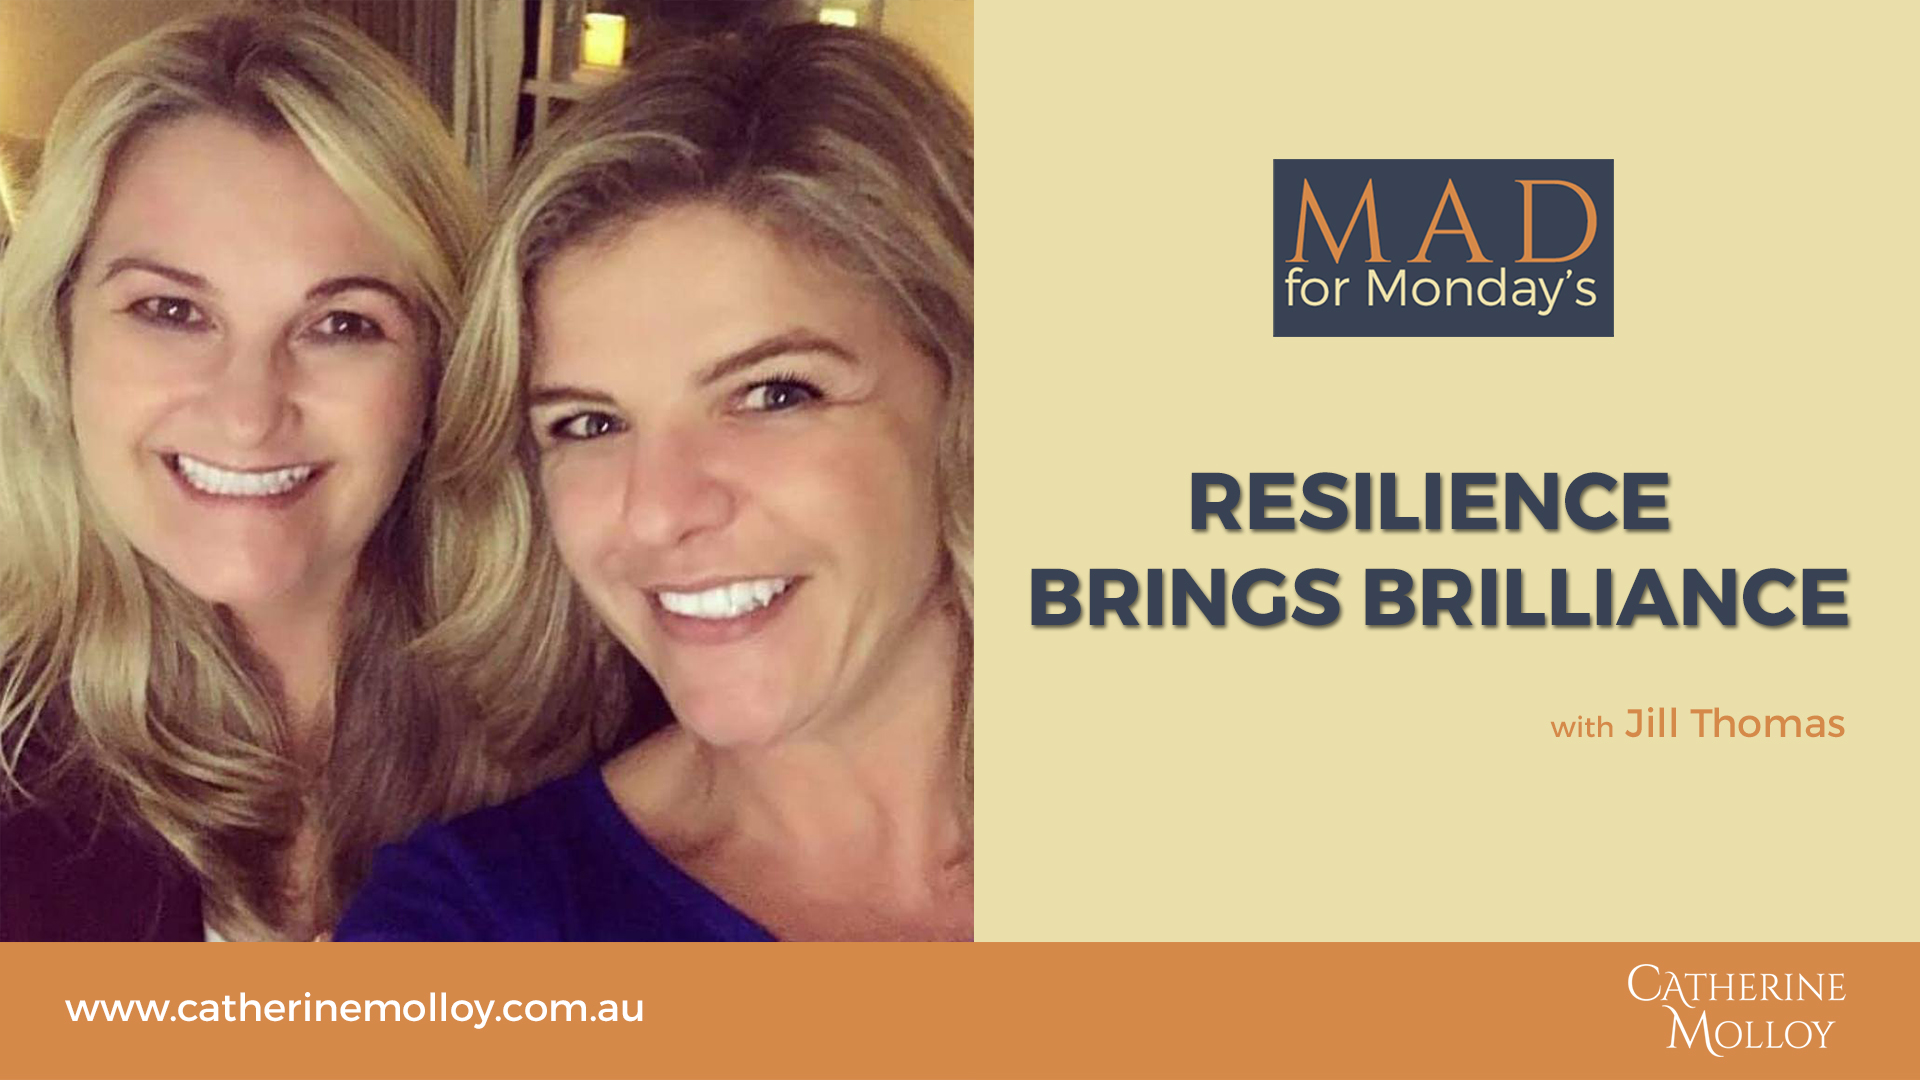 MAD for Monday's – Resilience brings brilliance